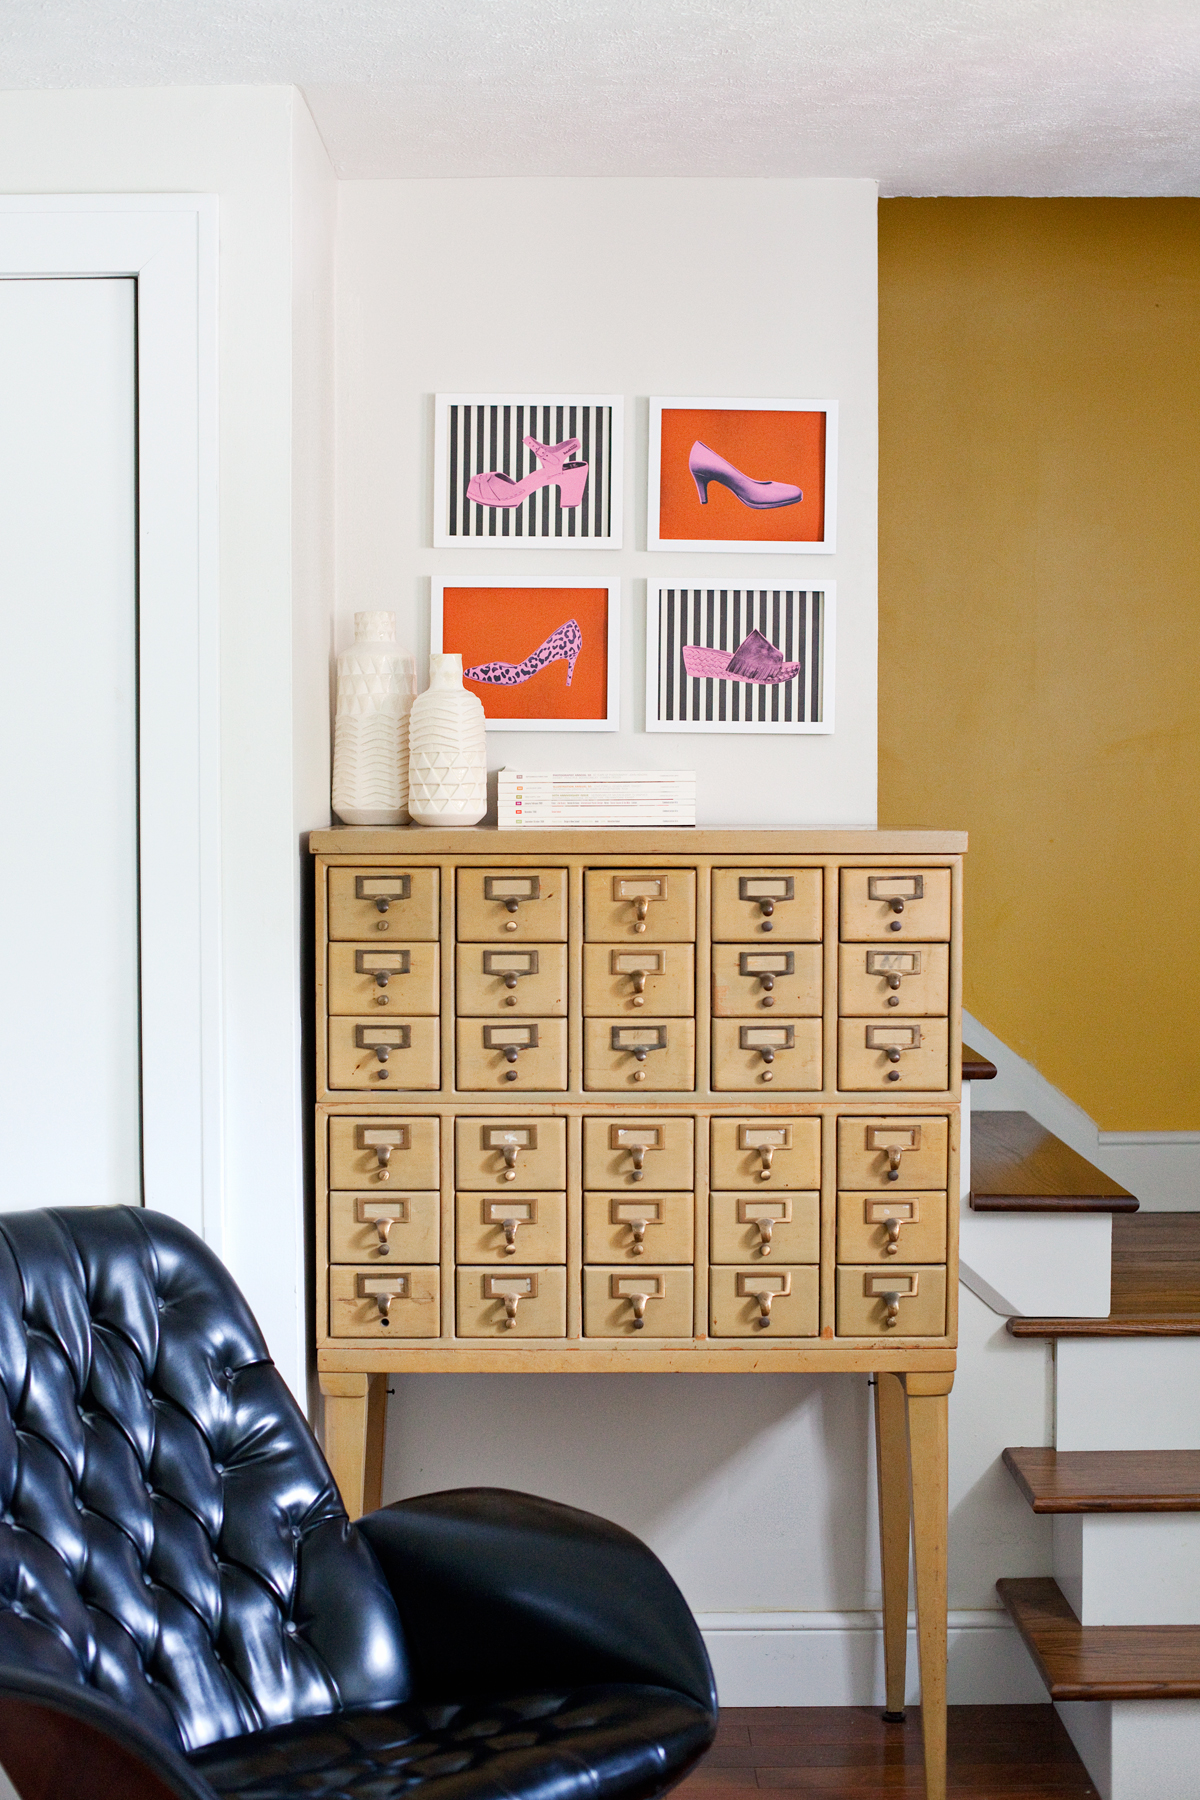 Turn your shoe collection into wall art!